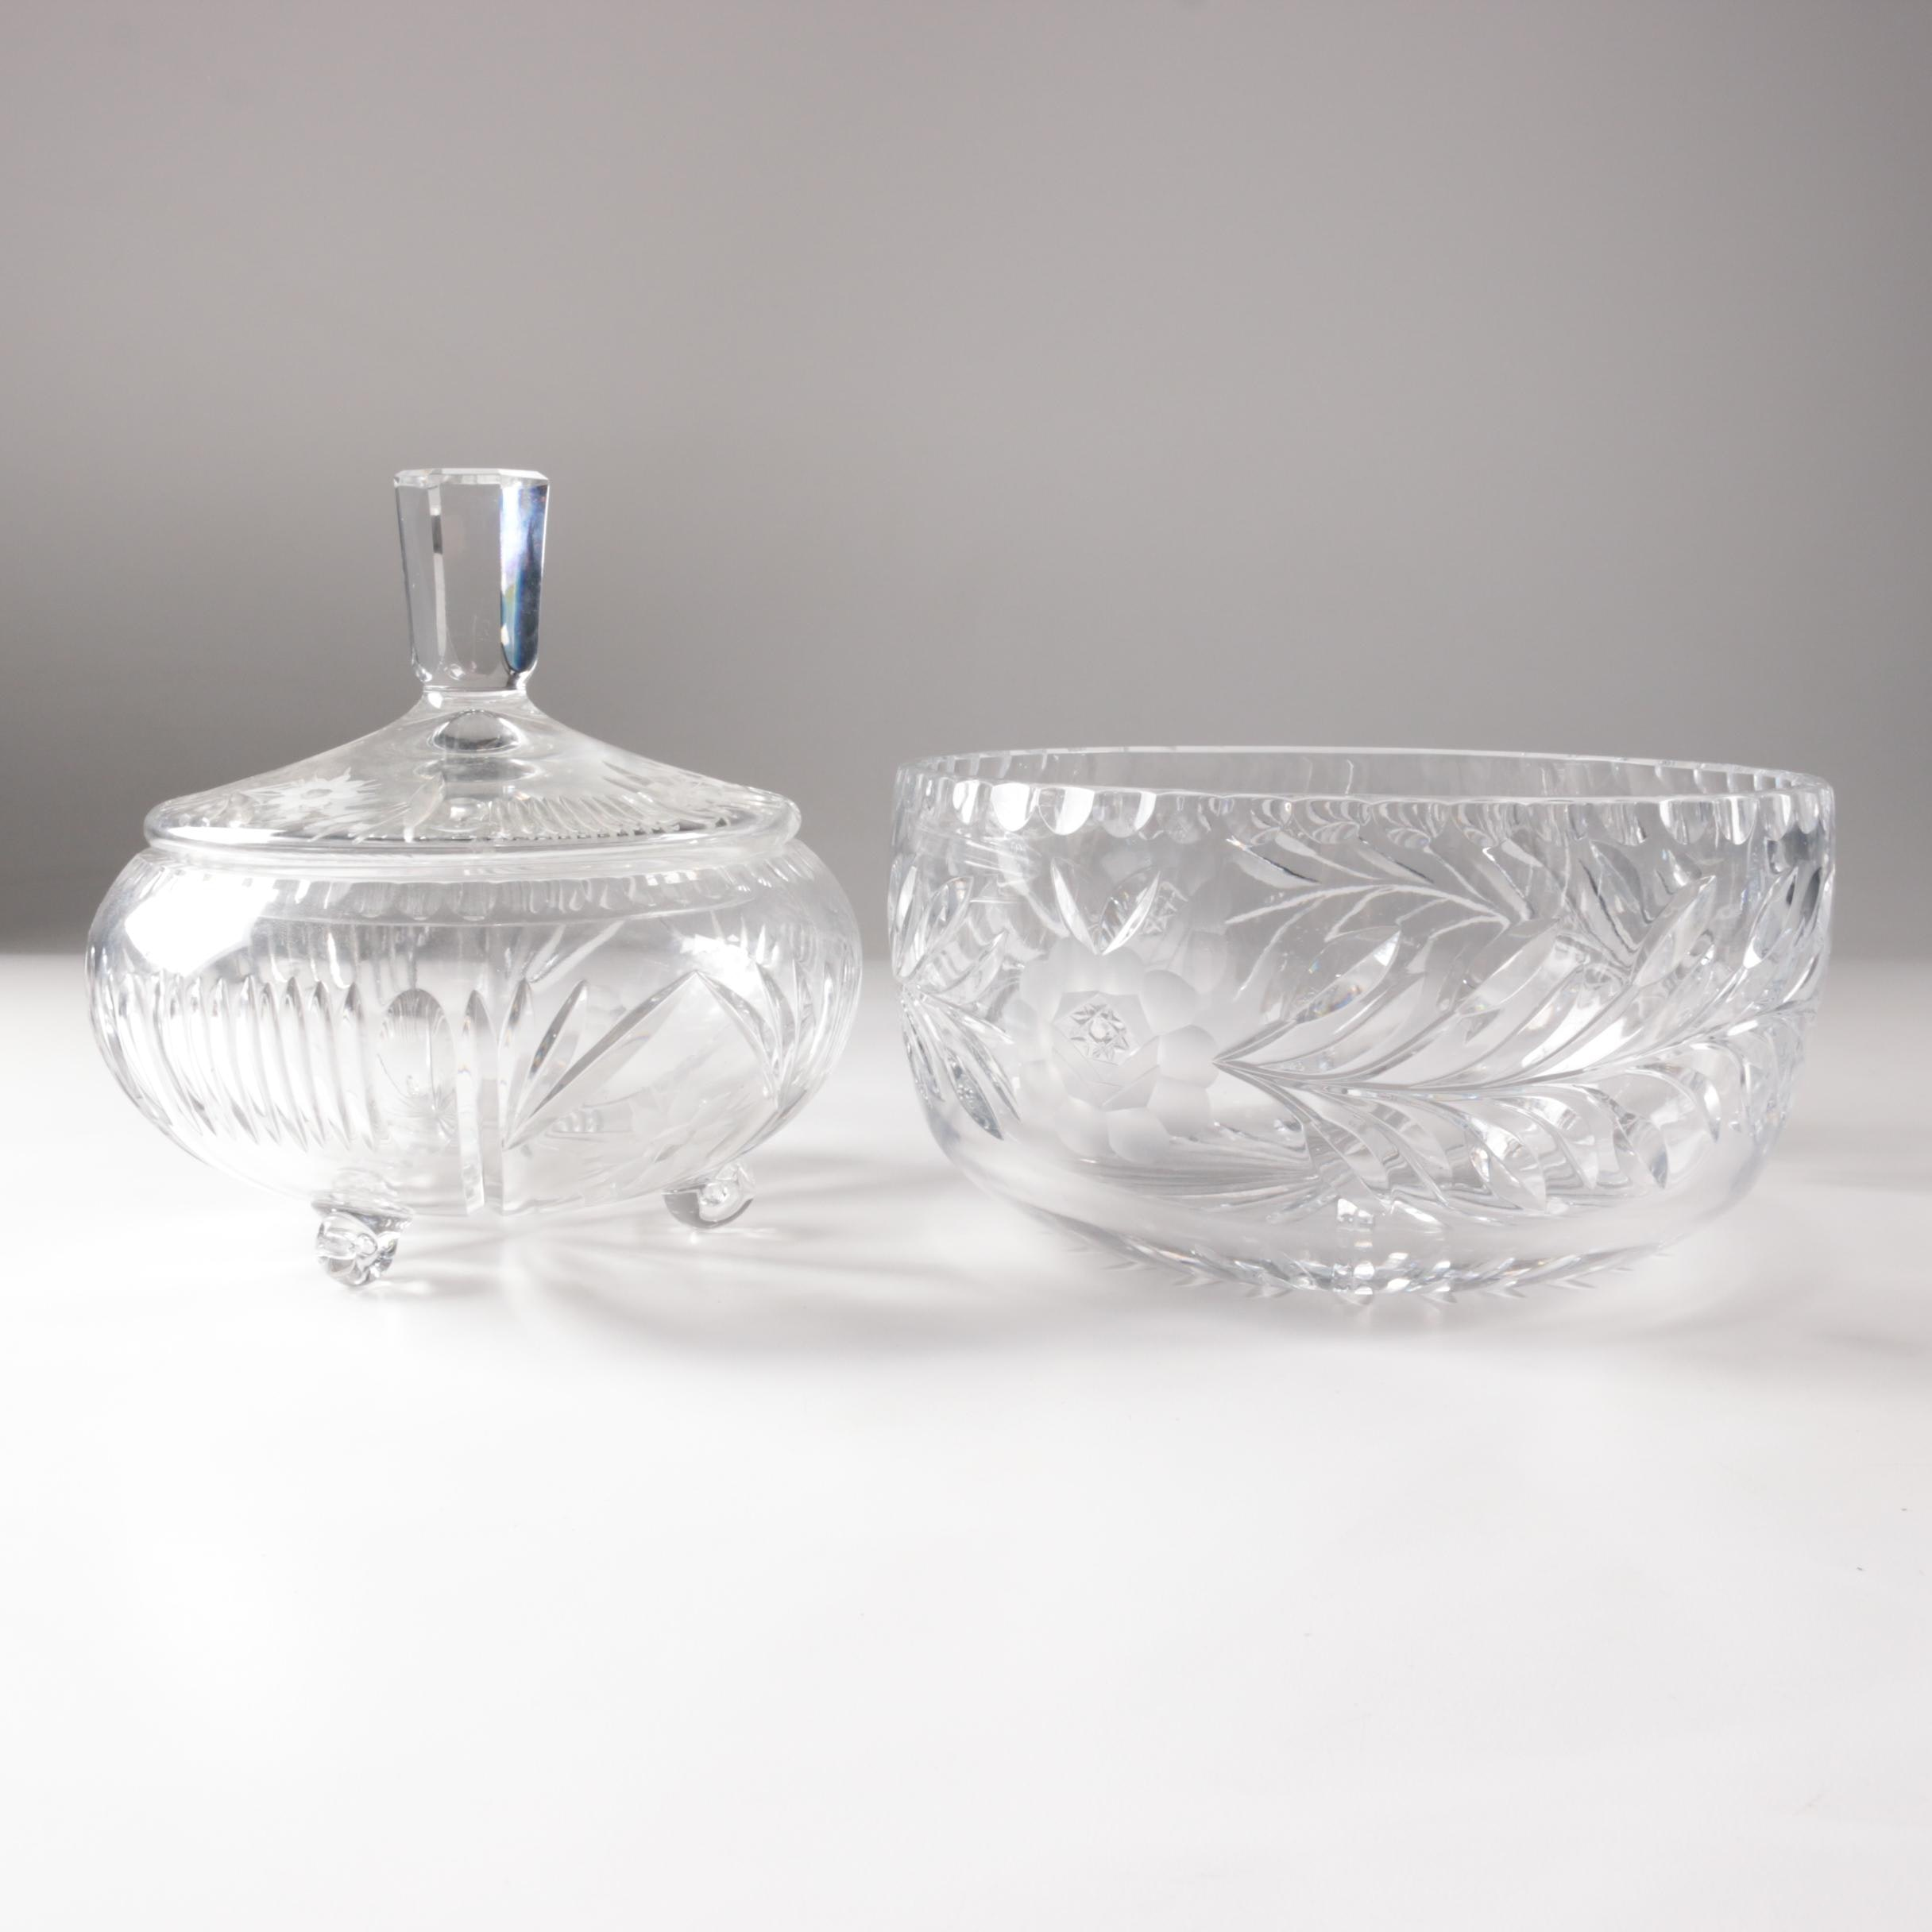 Glass Bowl with Covered Glass Candy Dish